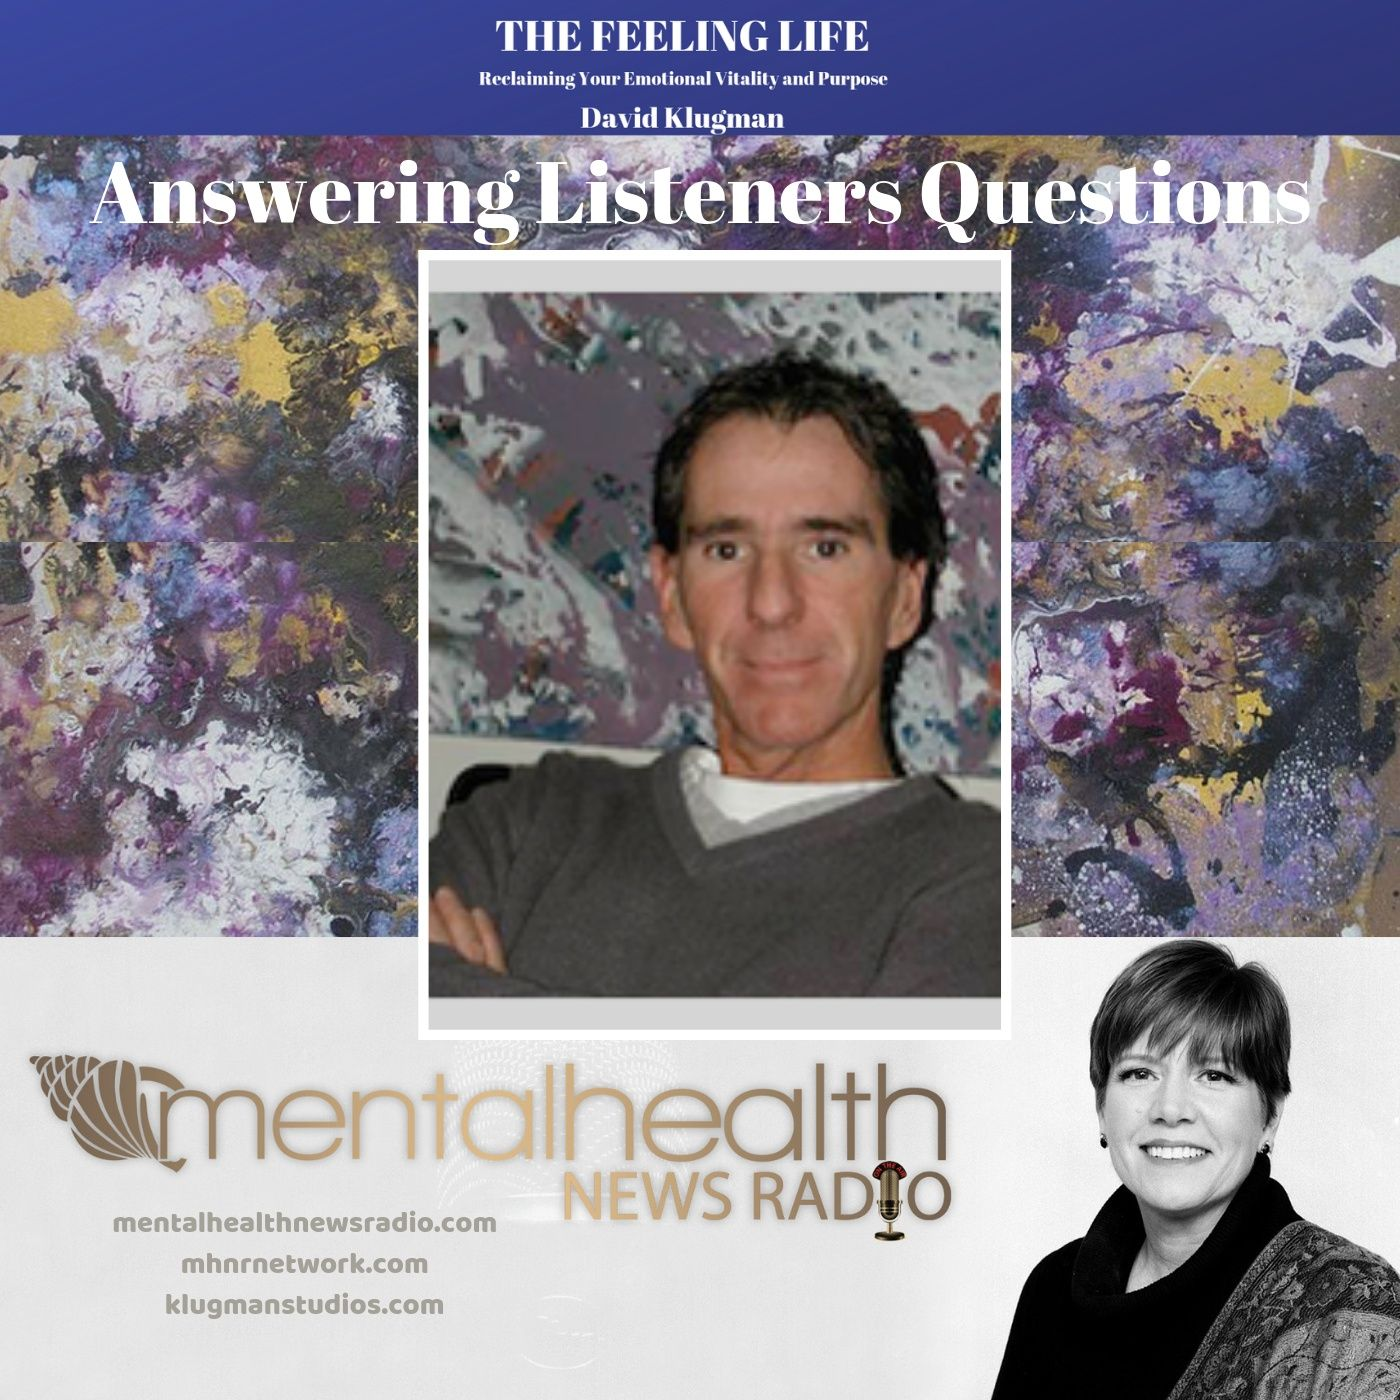 Mental Health News Radio - The Feeling Life: Answering Your Questions